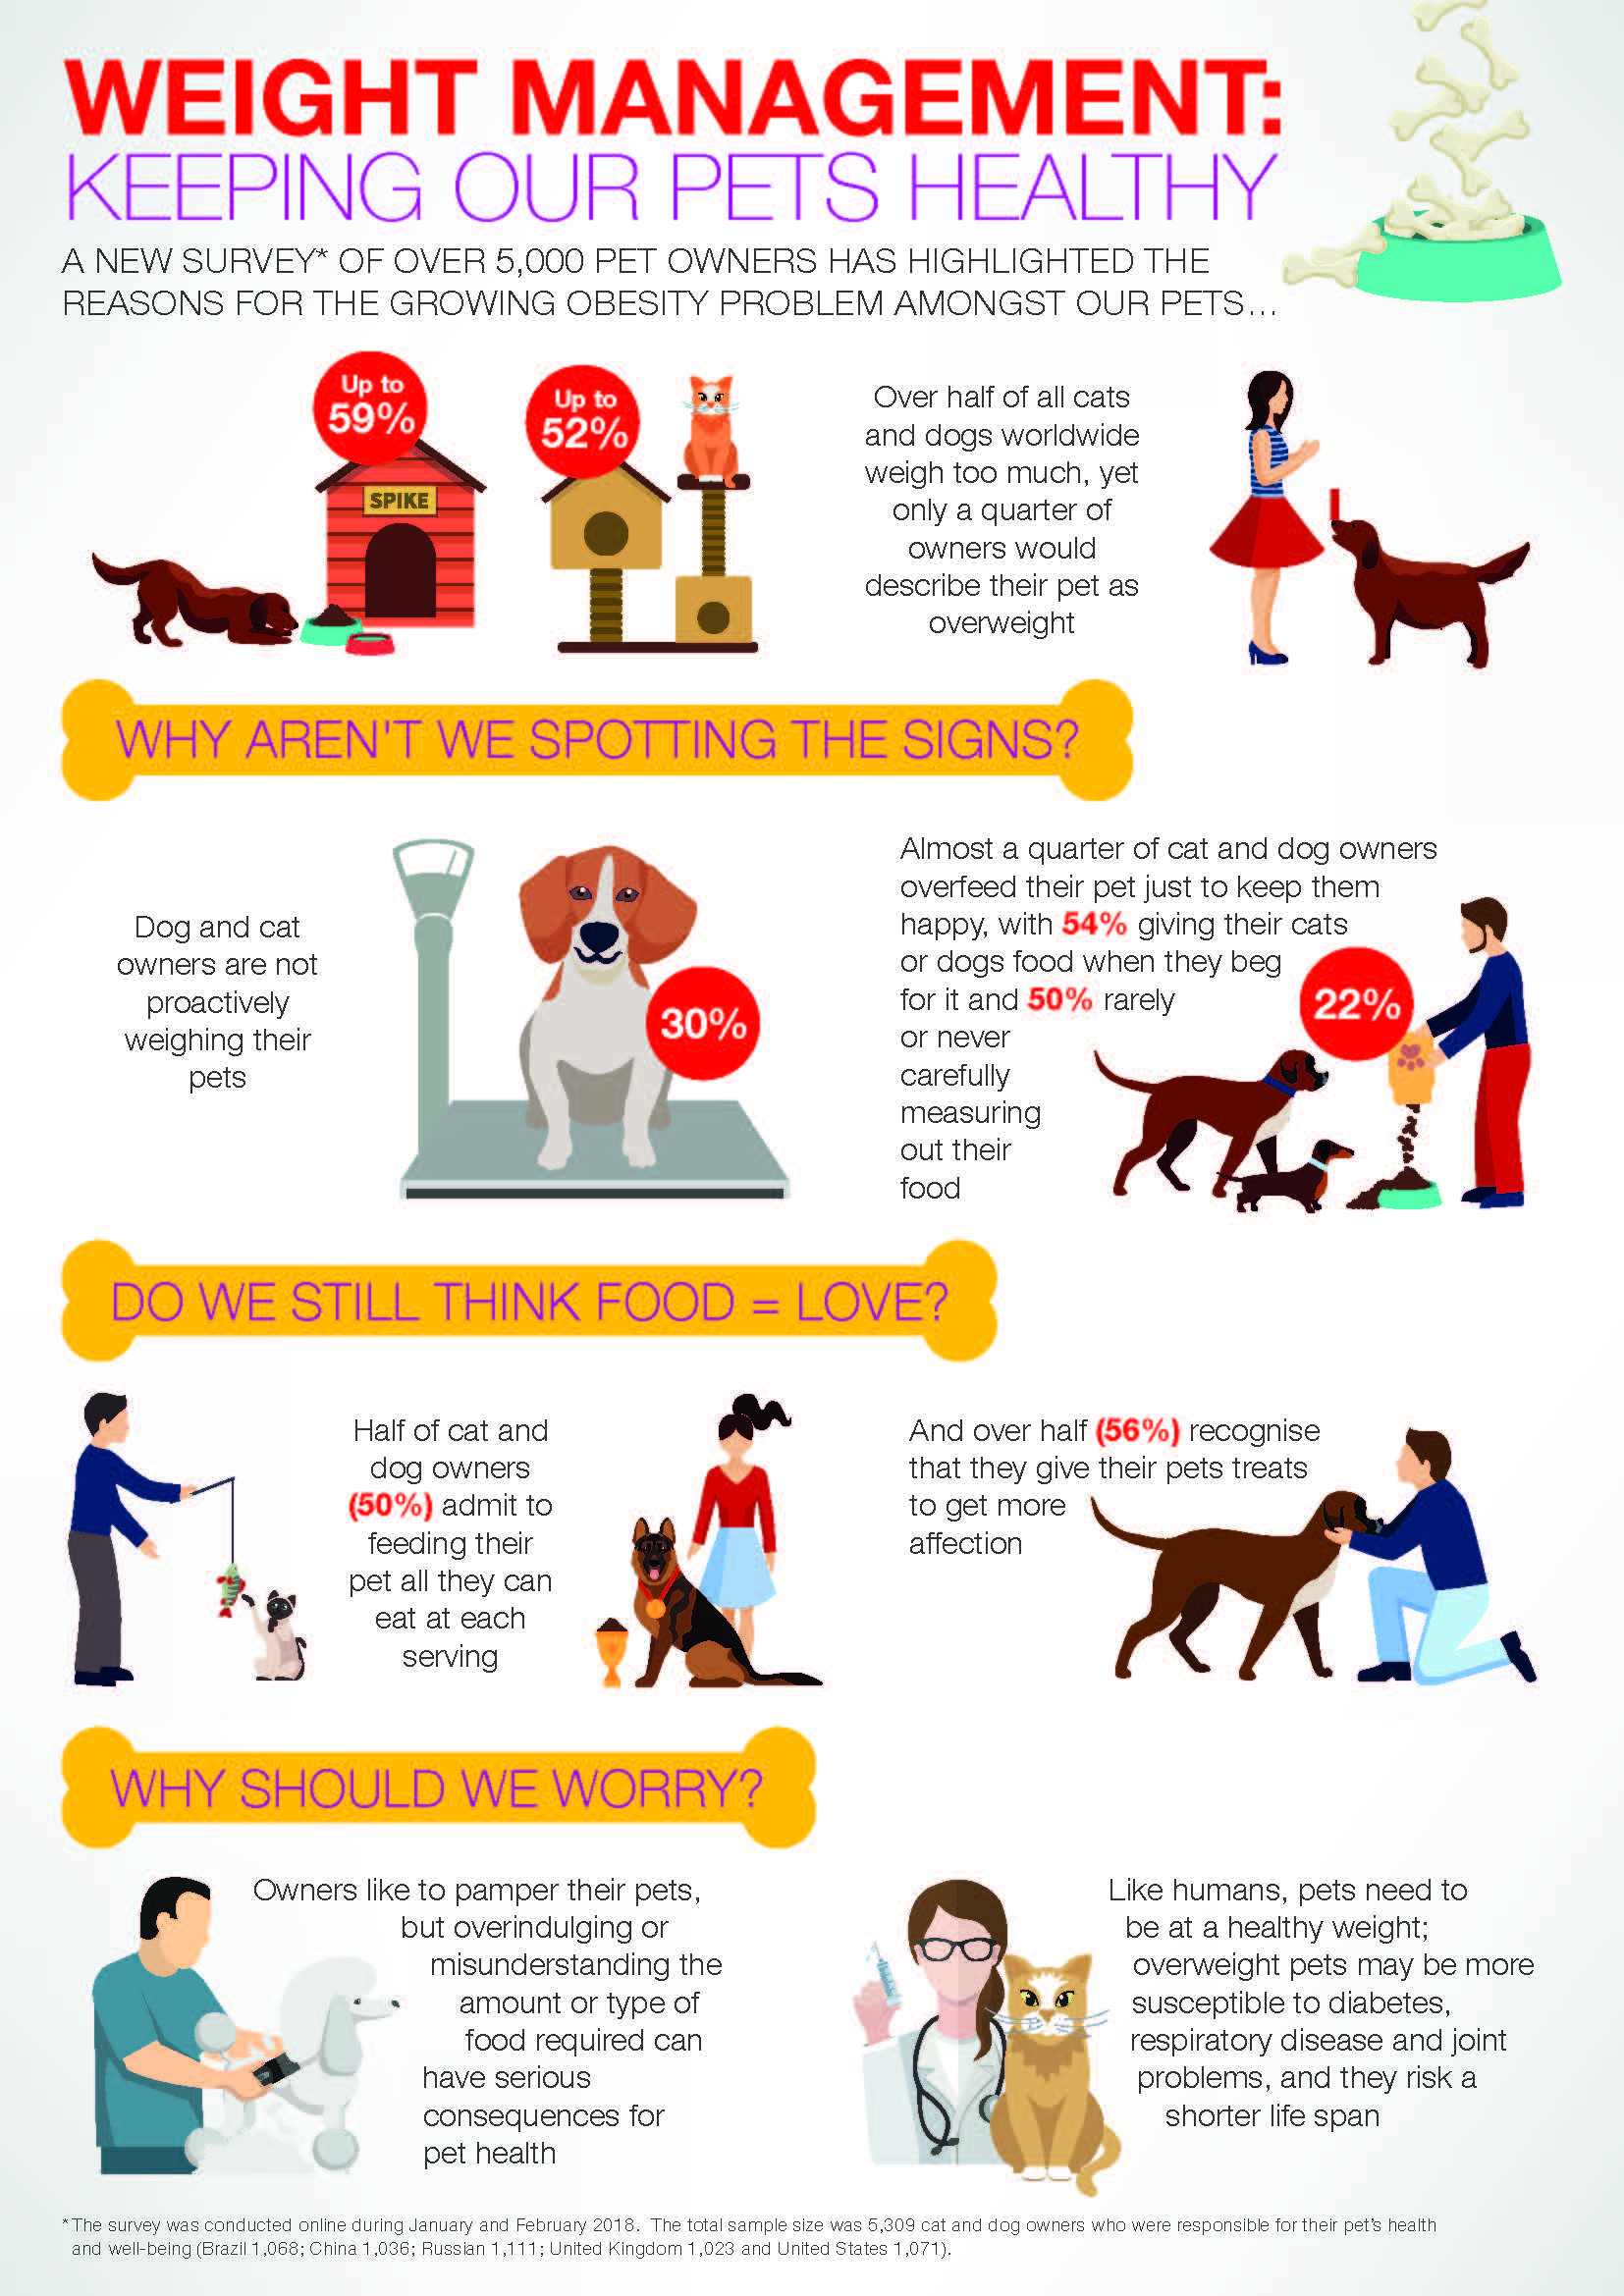 Weight Management Keeping Our Pets Healthy Infographic IMAGE